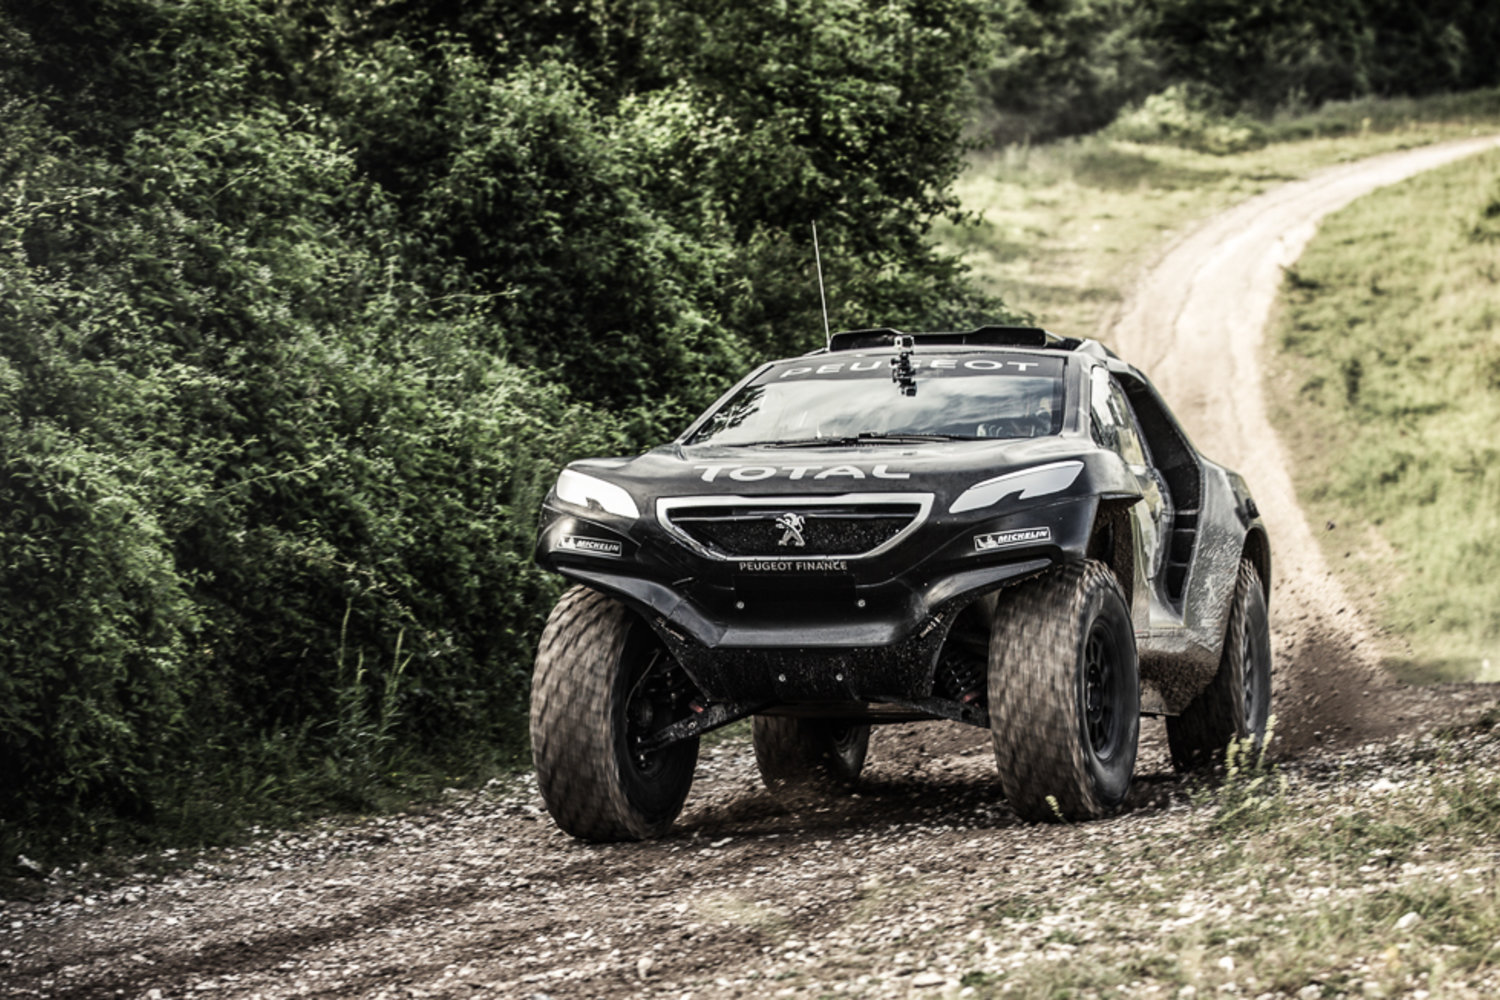 peugeot 2008 dkr premi re vid o en action et les caract ristiques techniques plan te. Black Bedroom Furniture Sets. Home Design Ideas